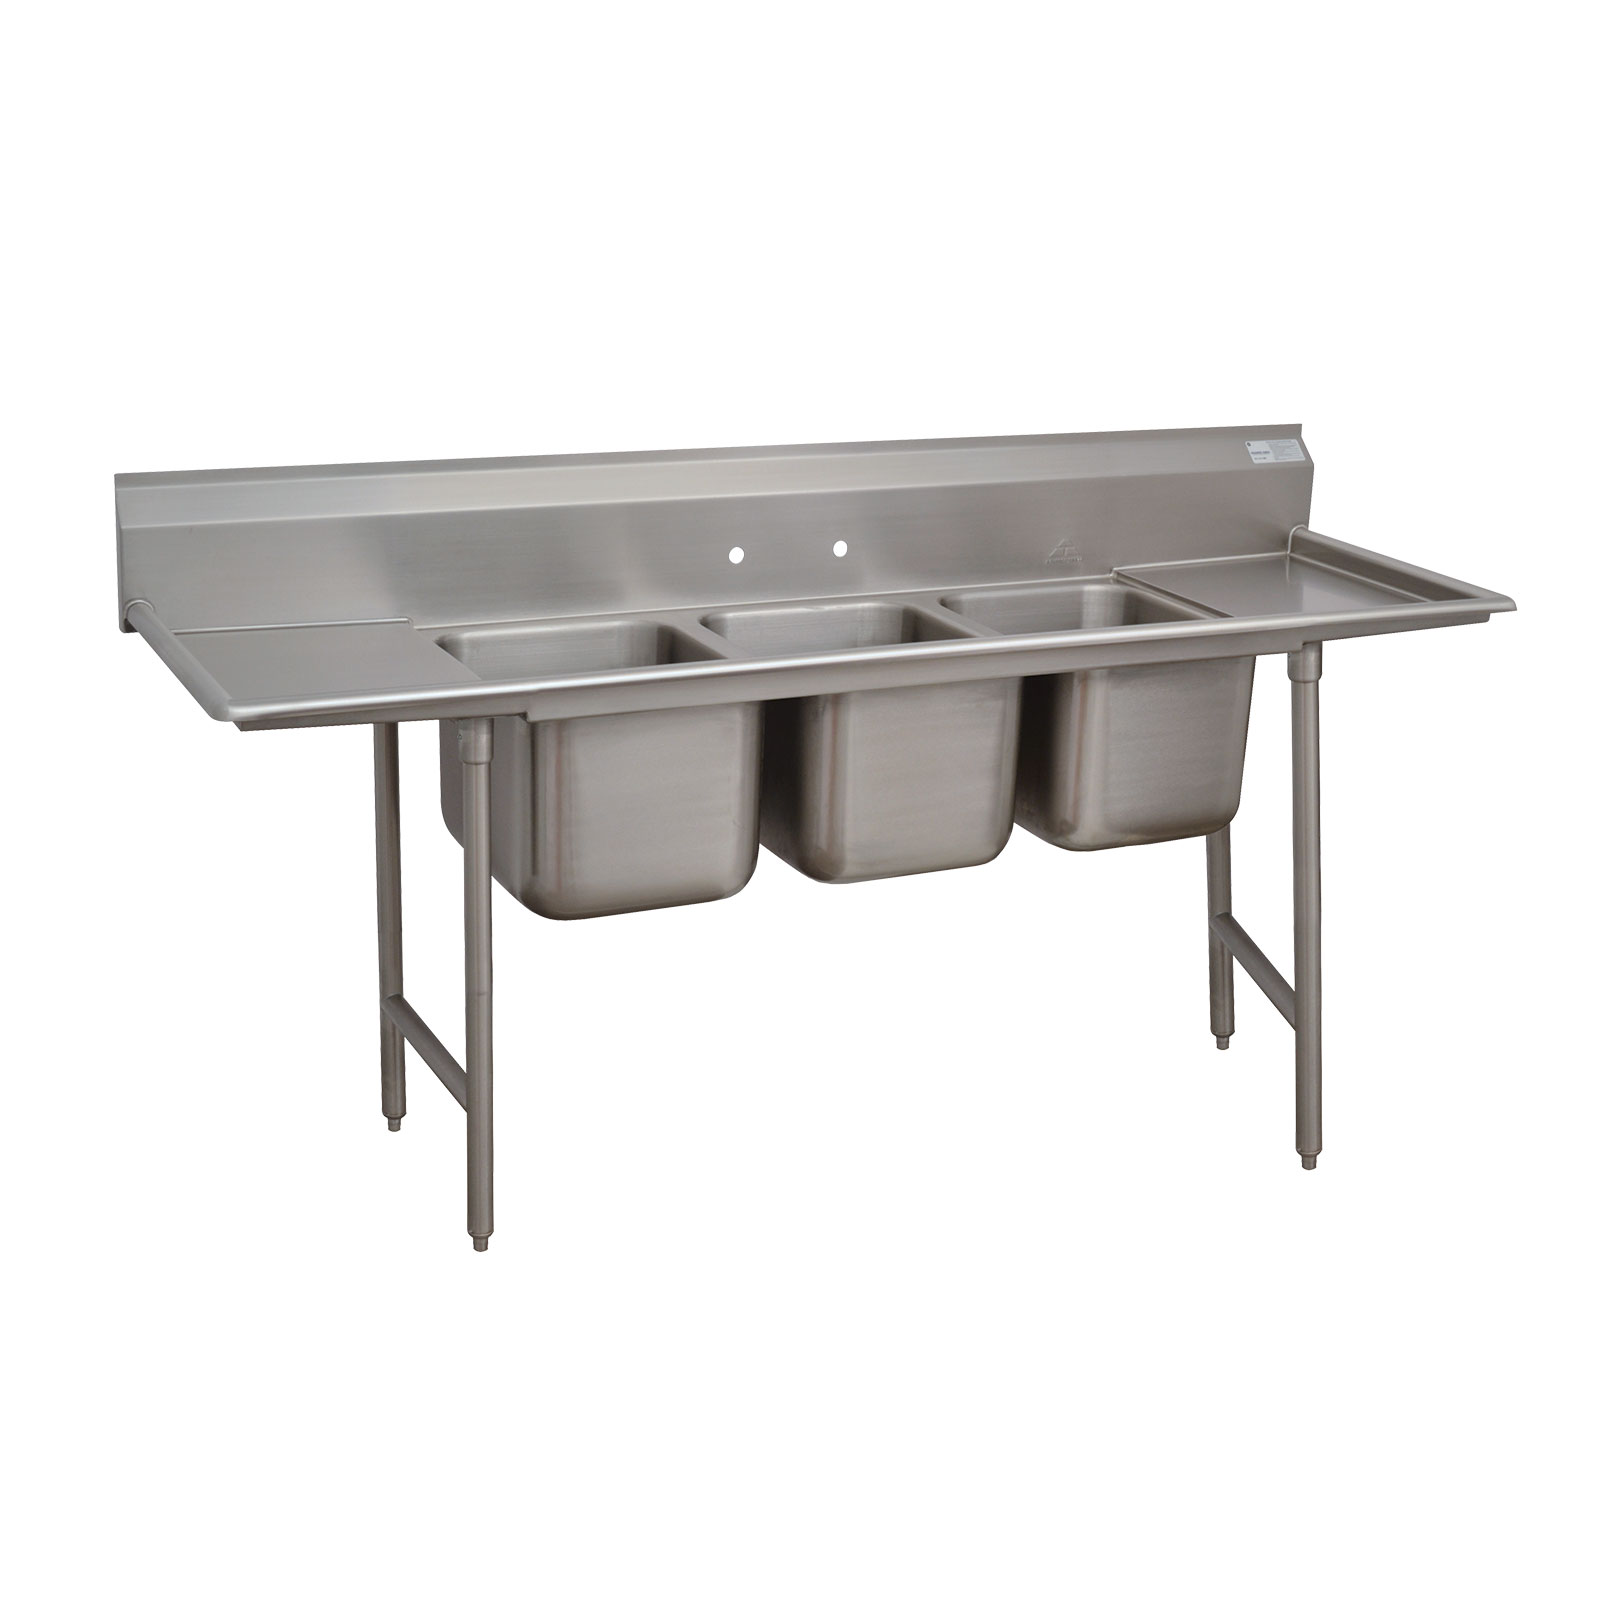 Advance Tabco T9-3-54-18R sink, (3) three compartment